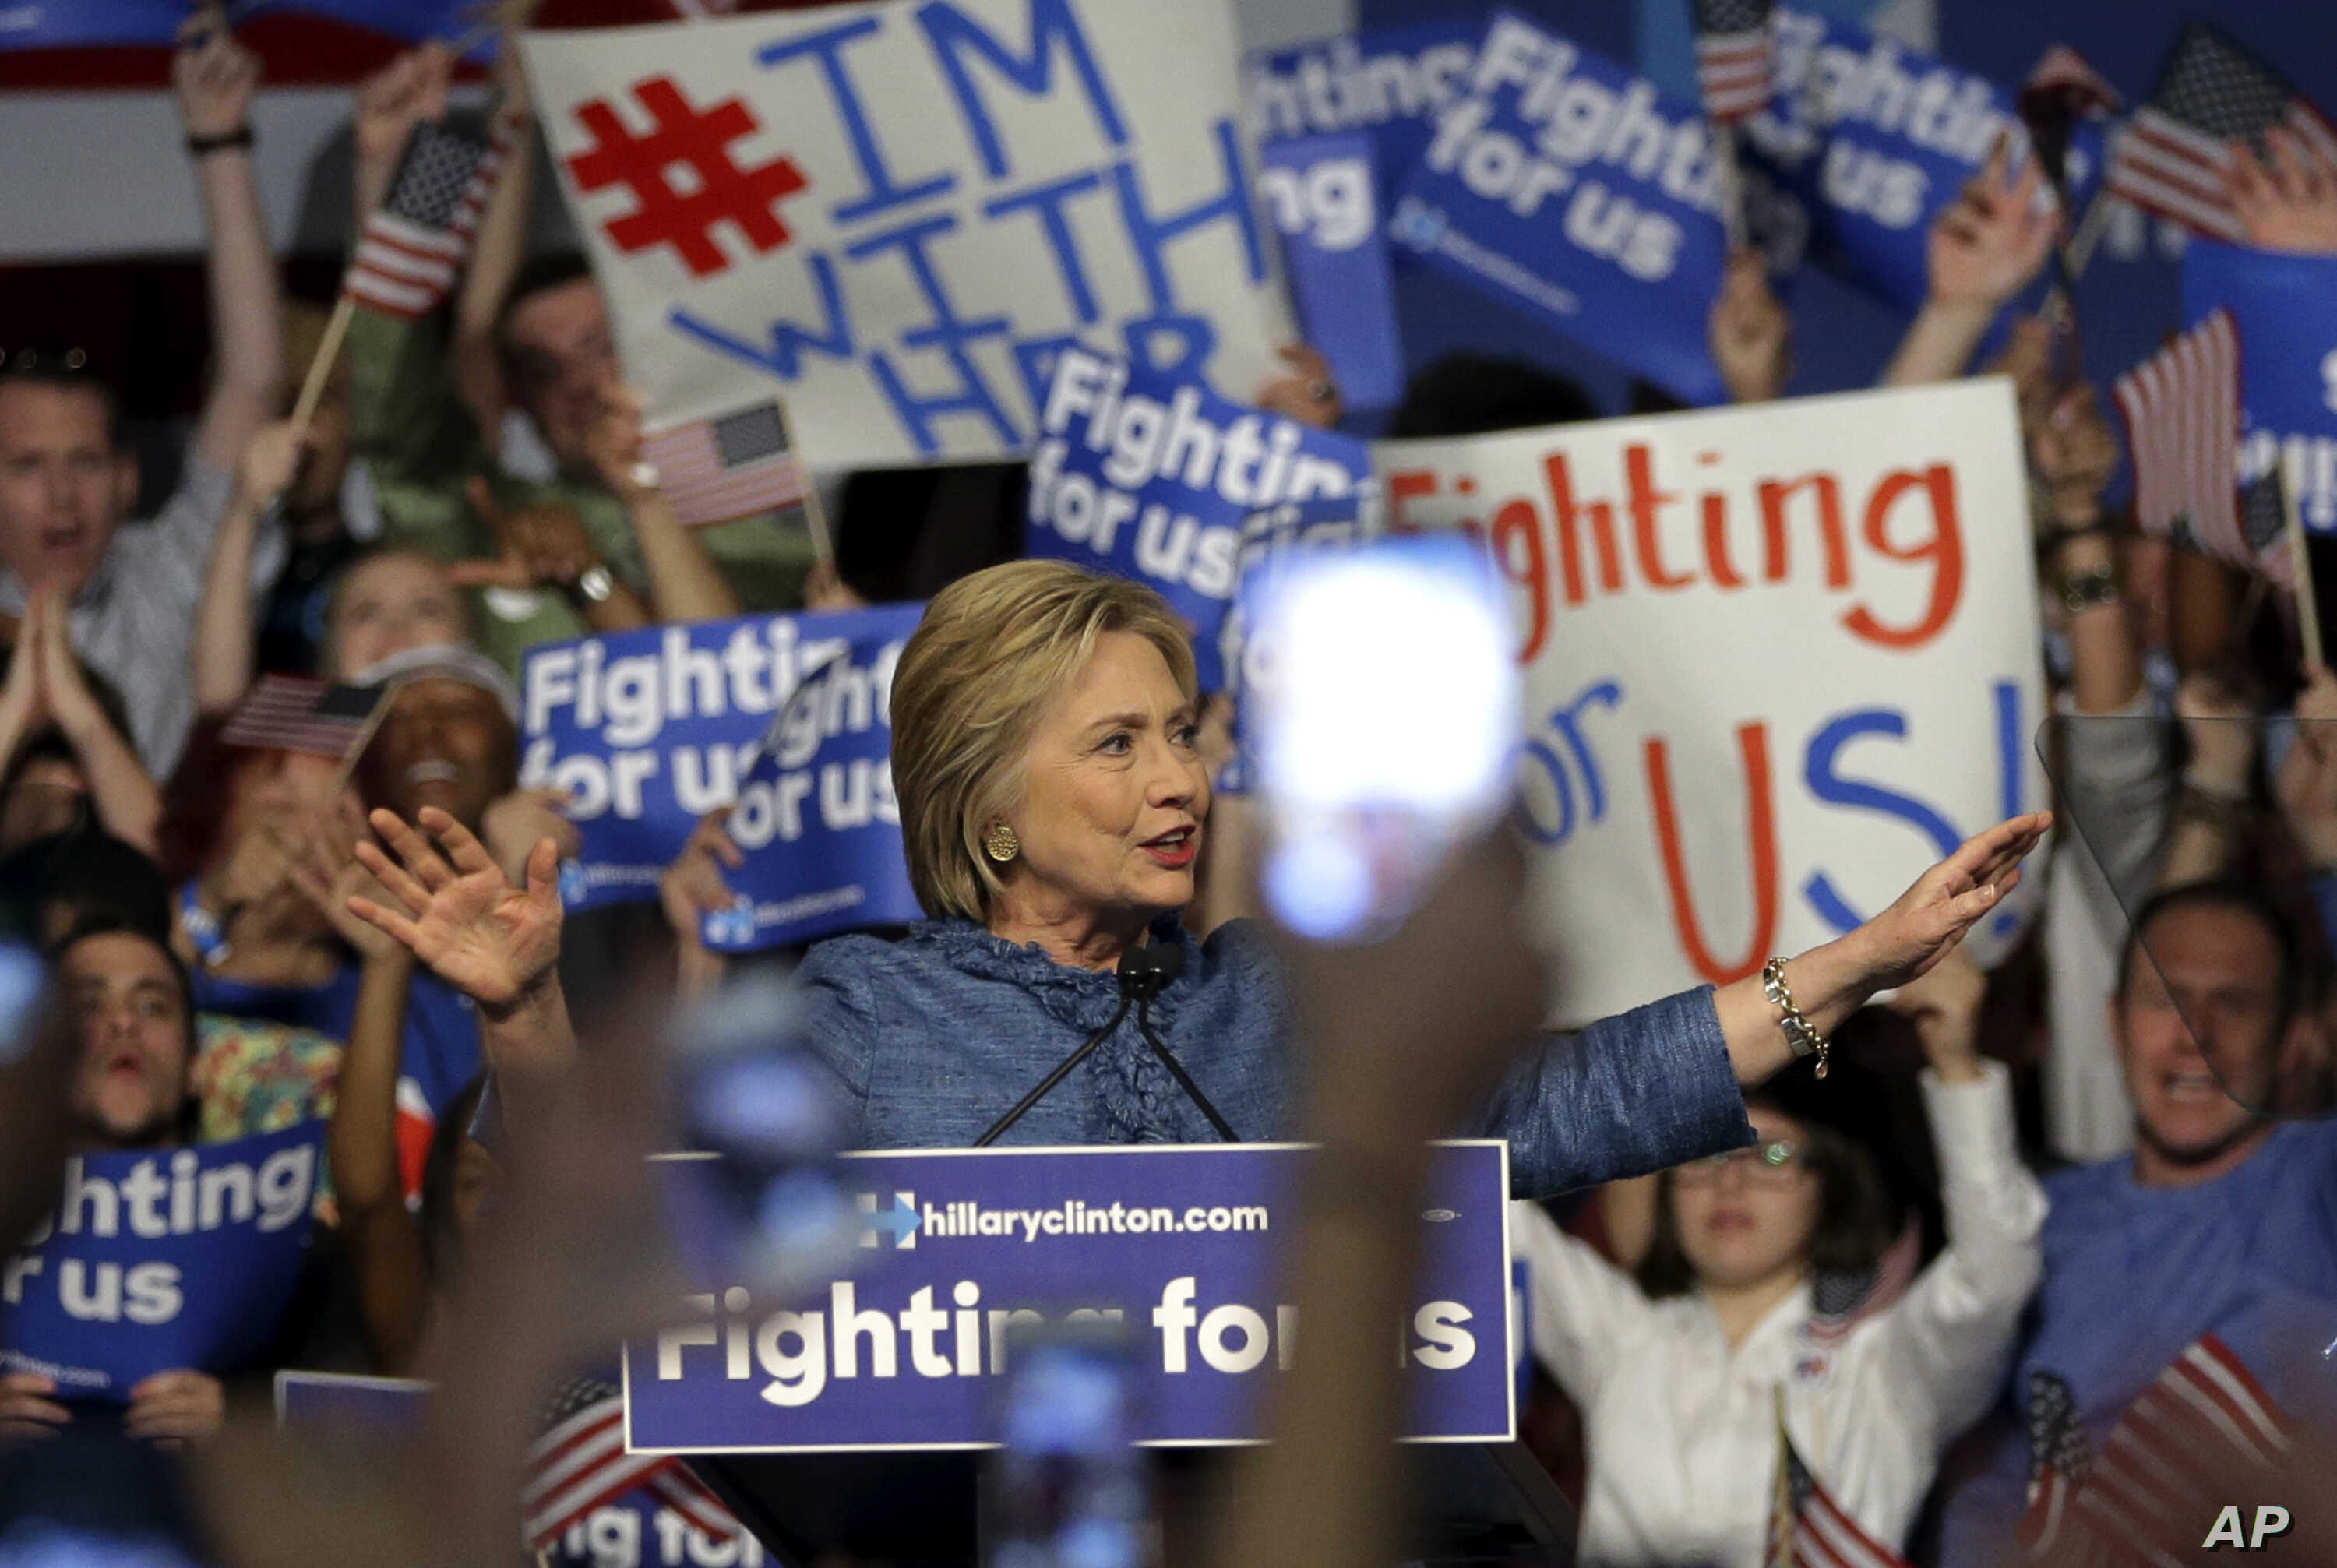 Democratic presidential candidate Hillary Clinton speaks during a rally in West Palm Beach, Florida, March 15, 2016.